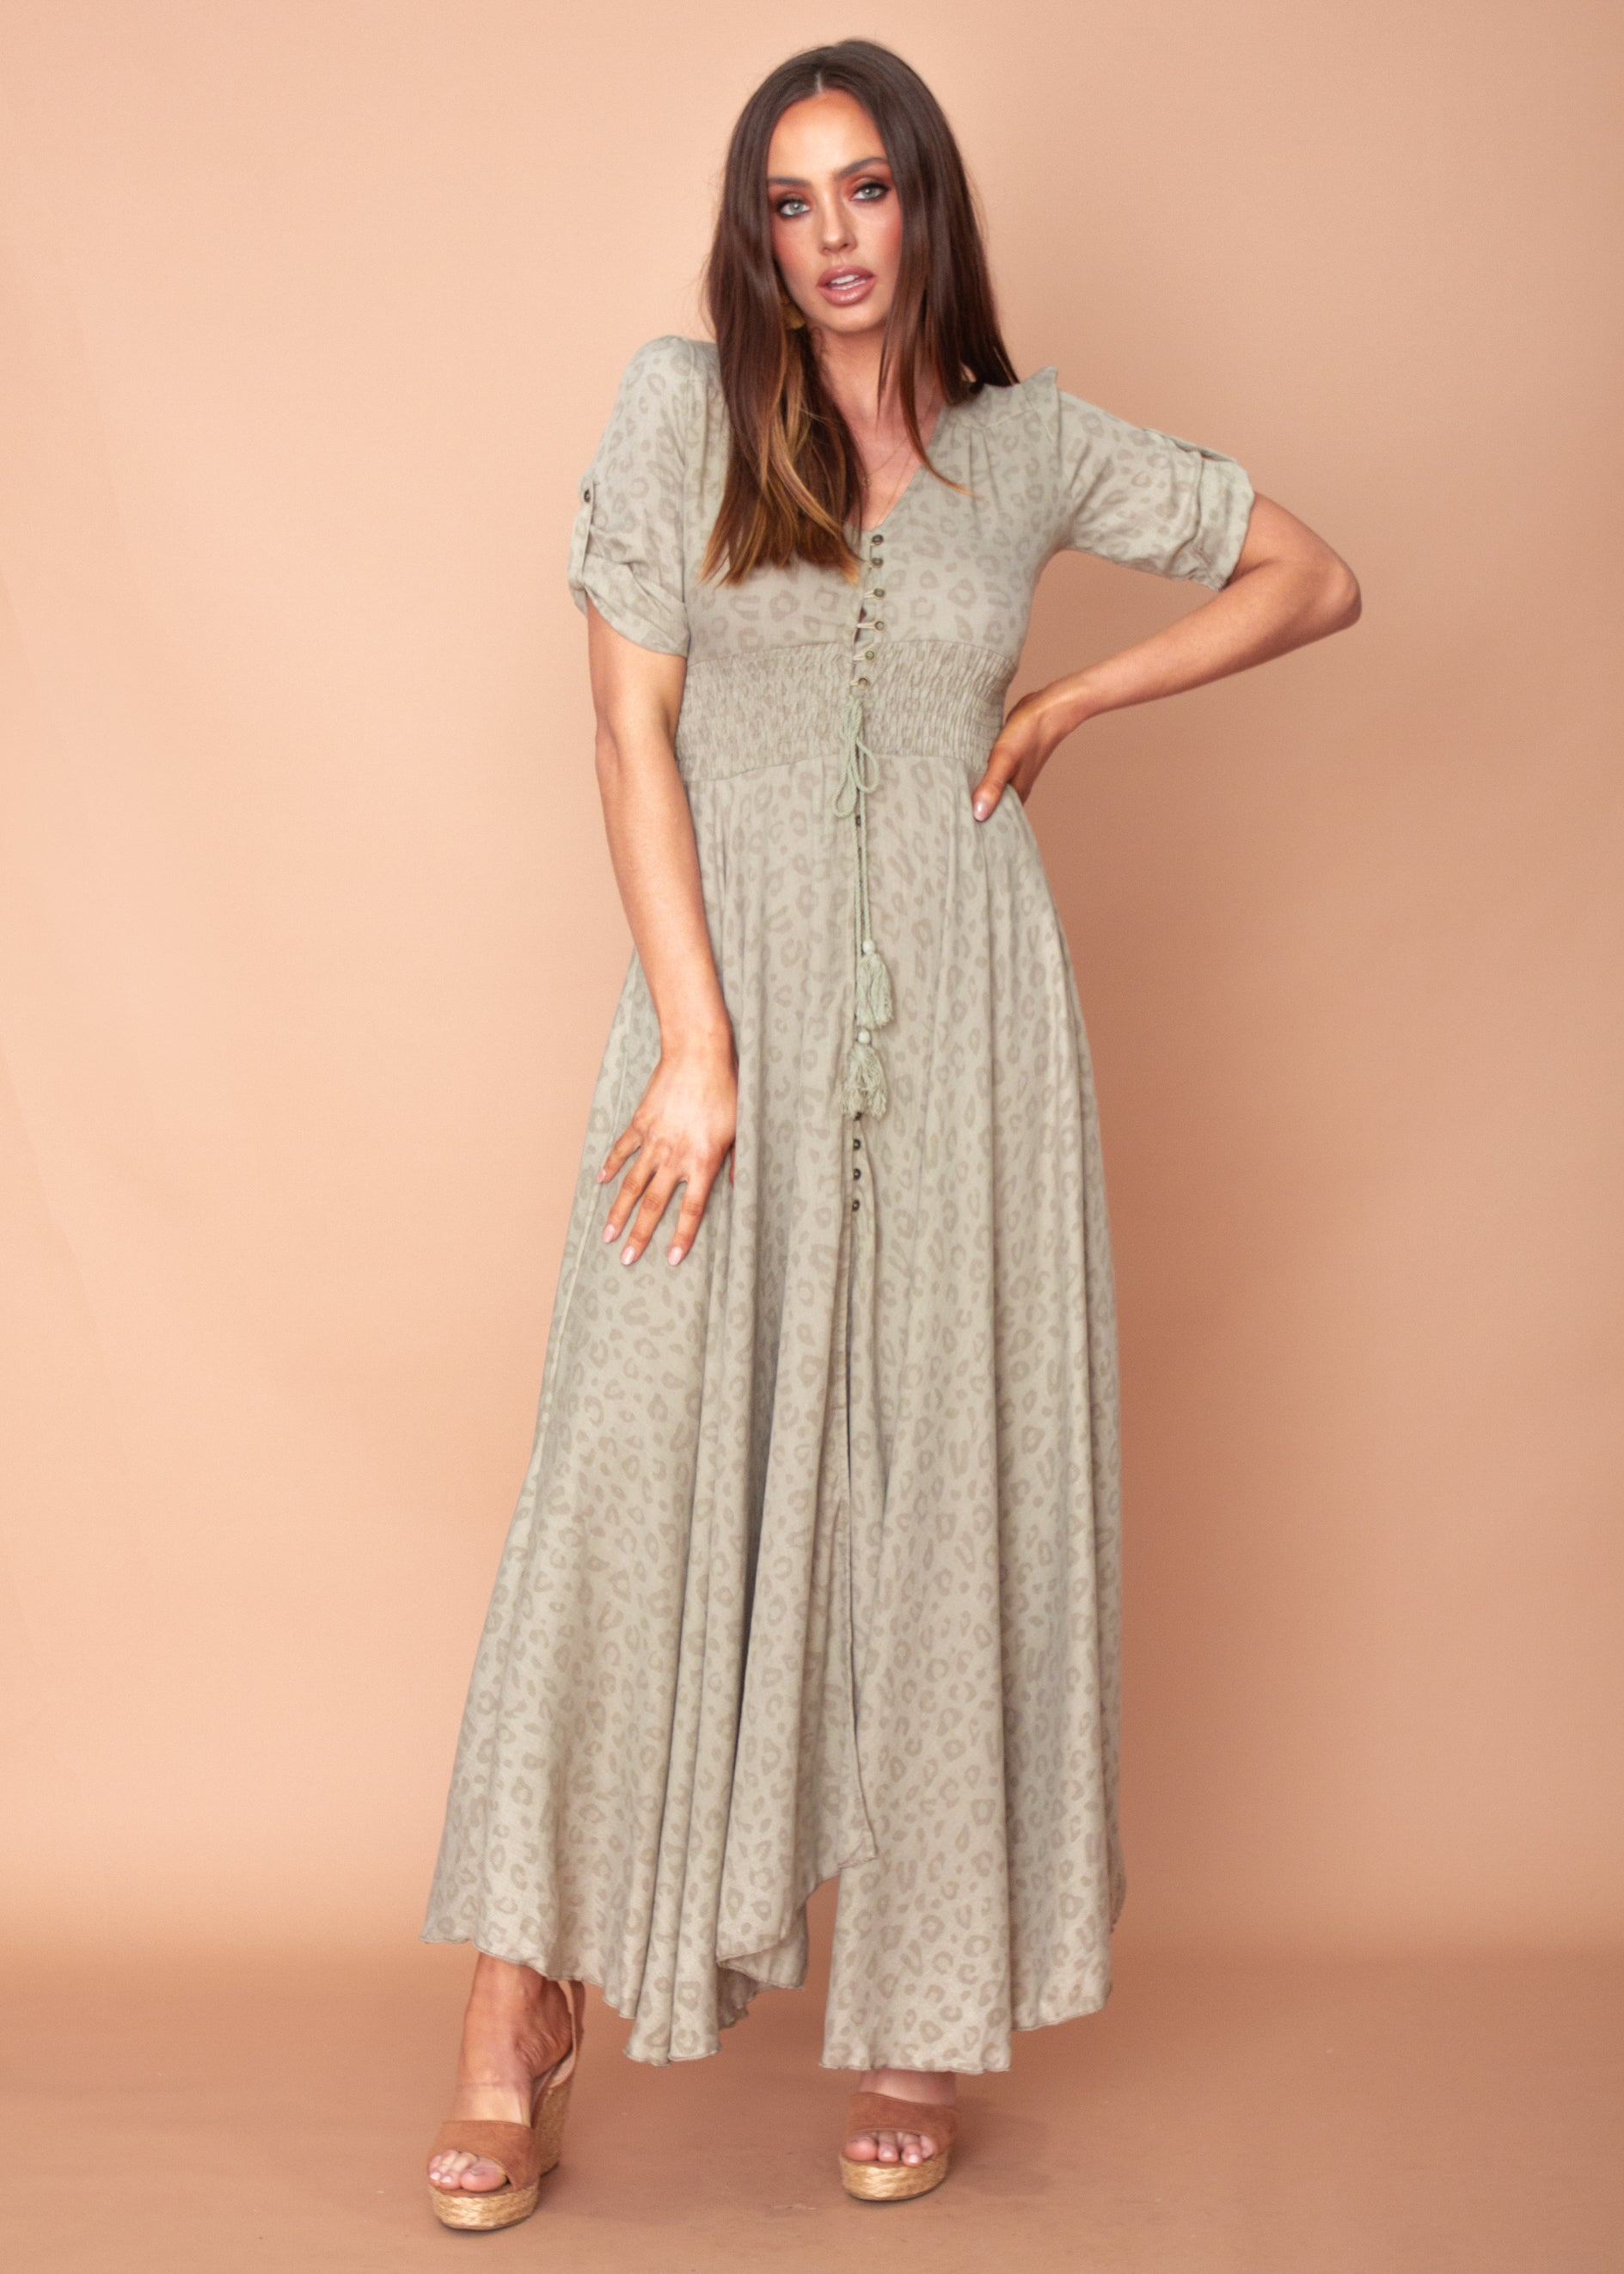 Women's New Romantics Maxi Dress - Winslet